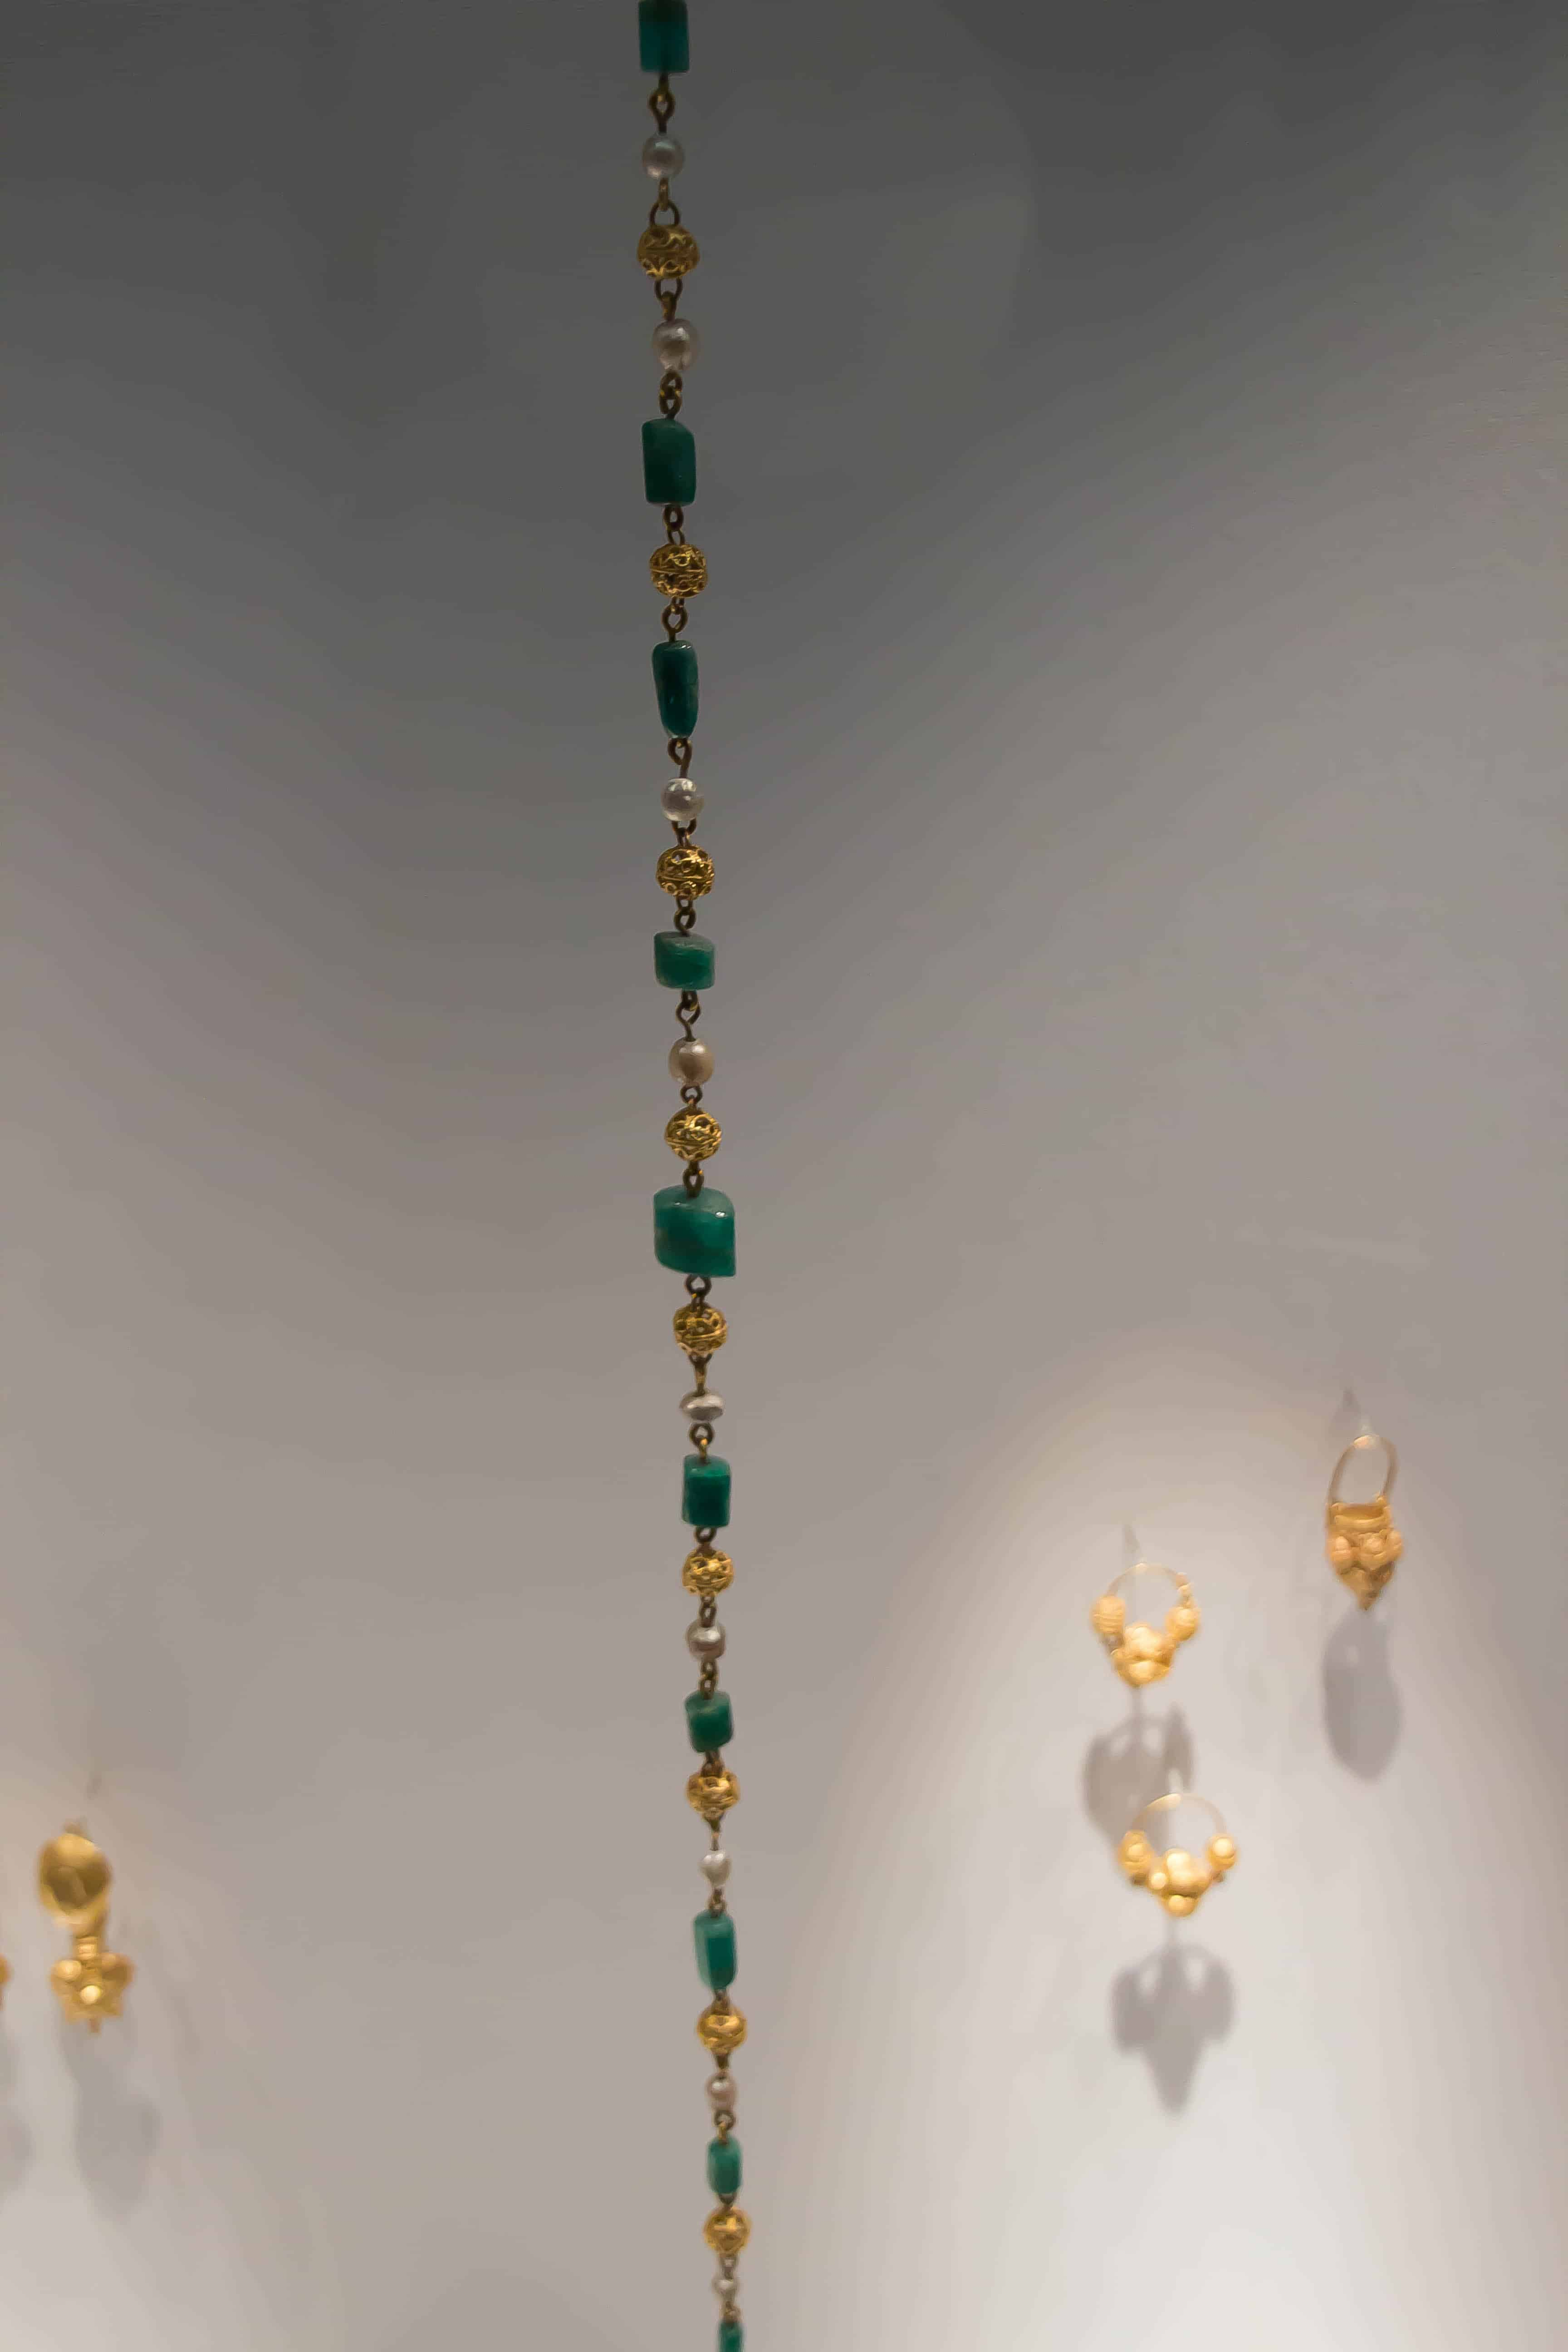 Ancient Emerald Necklace.jpg